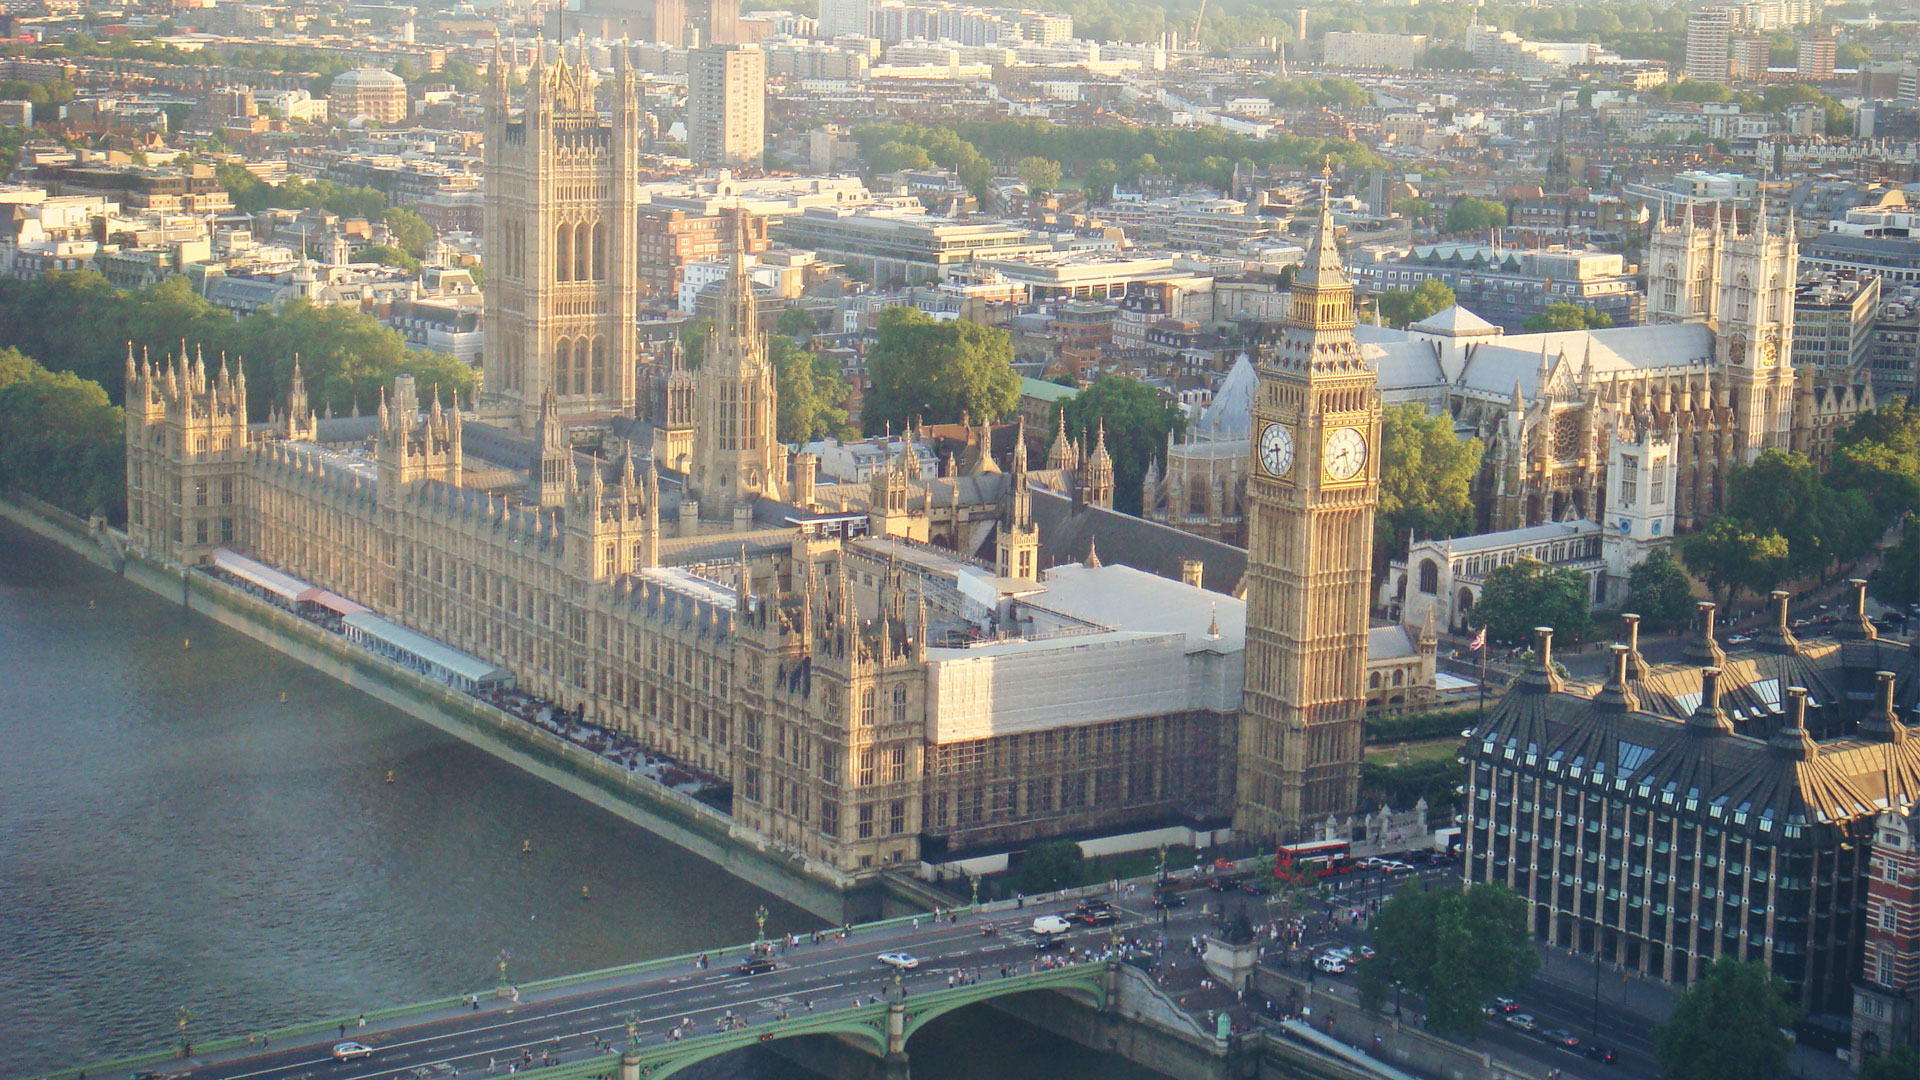 Bird's-eye view of the Palace of Westminster, Houses of Parliament